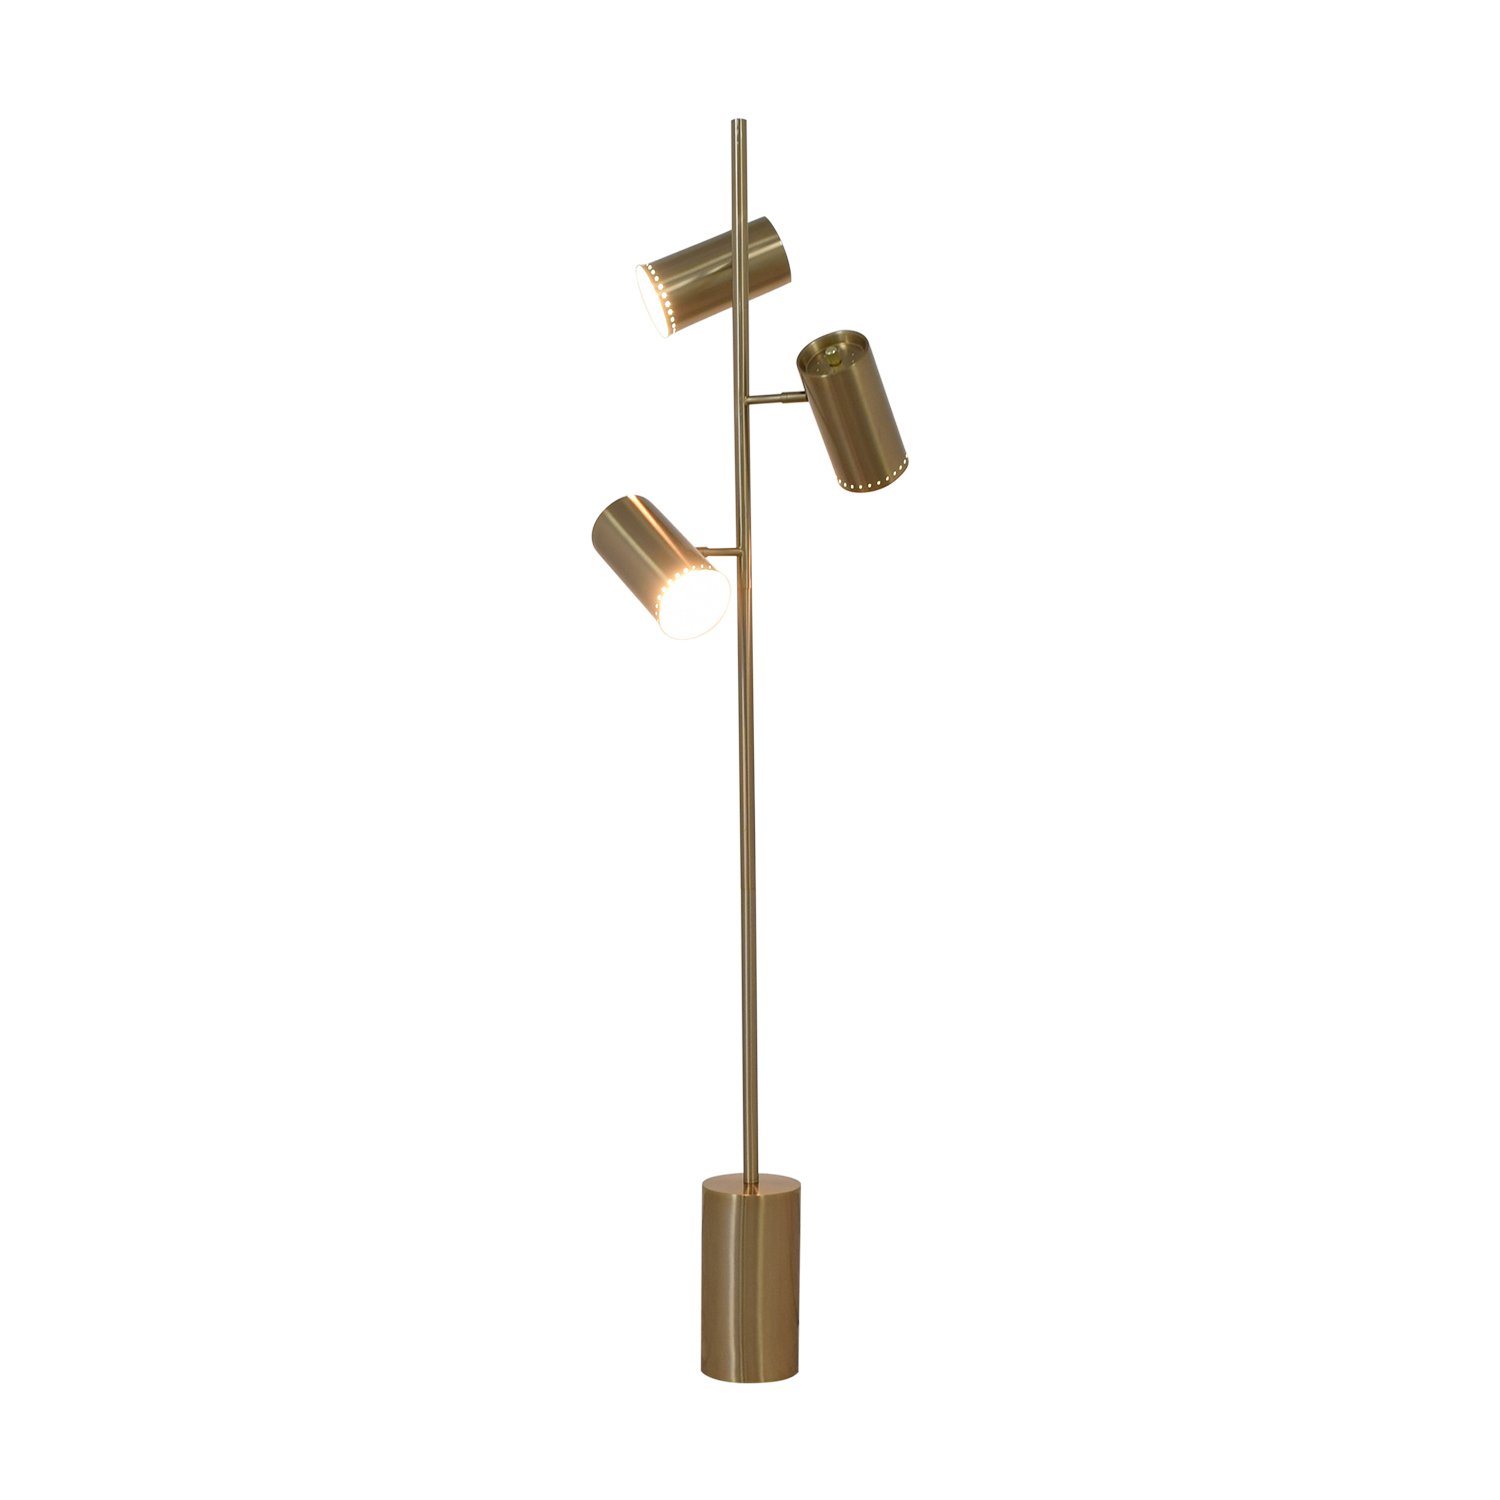 buy CB2 Trio Brushed Nickel Floor Lamp CB2 Lamps